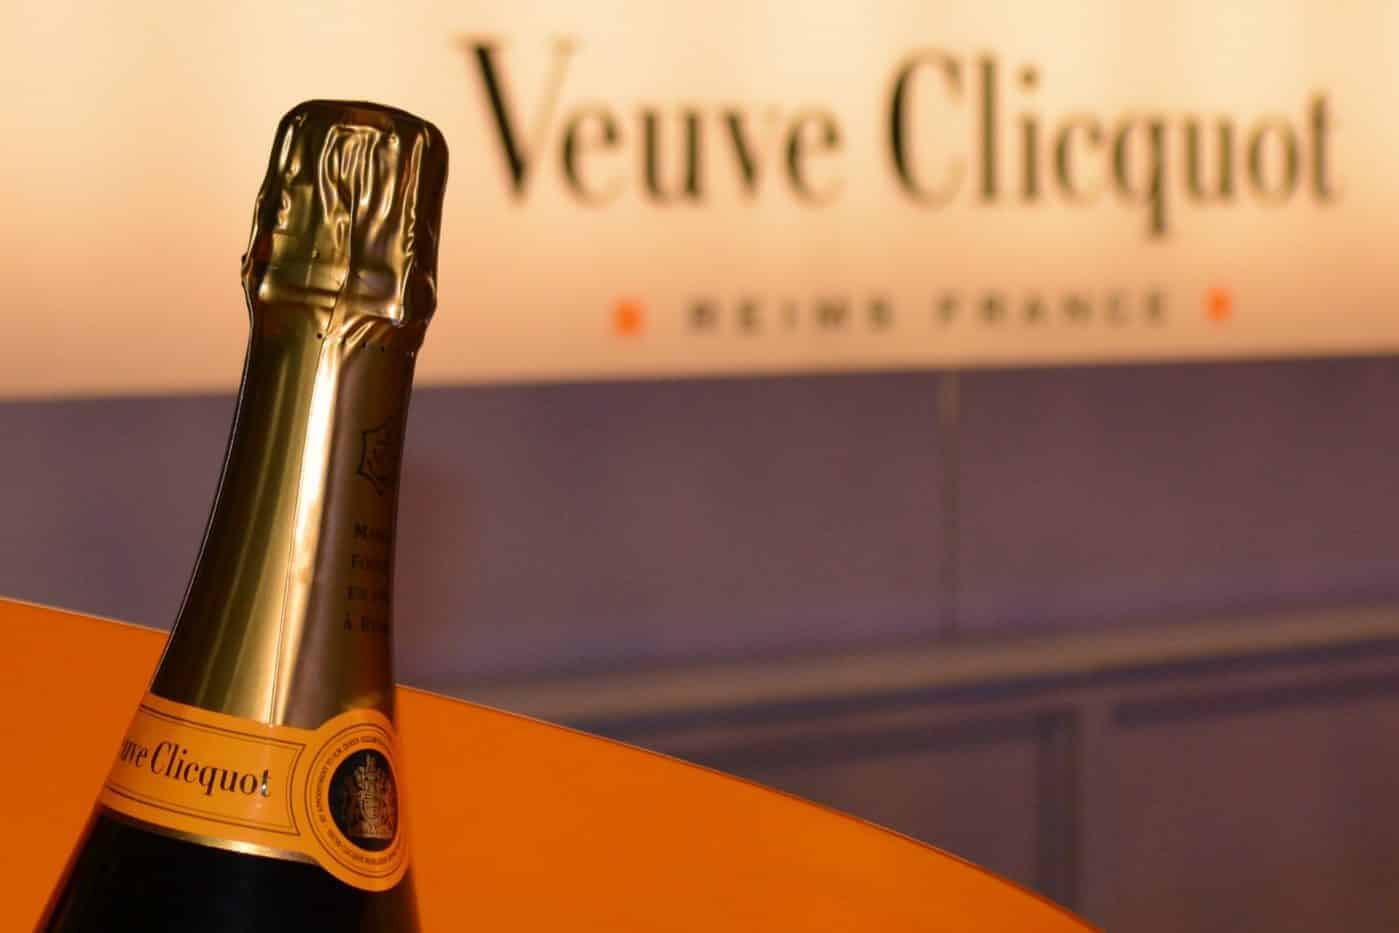 Veuve clicquot champagne bottle and logo